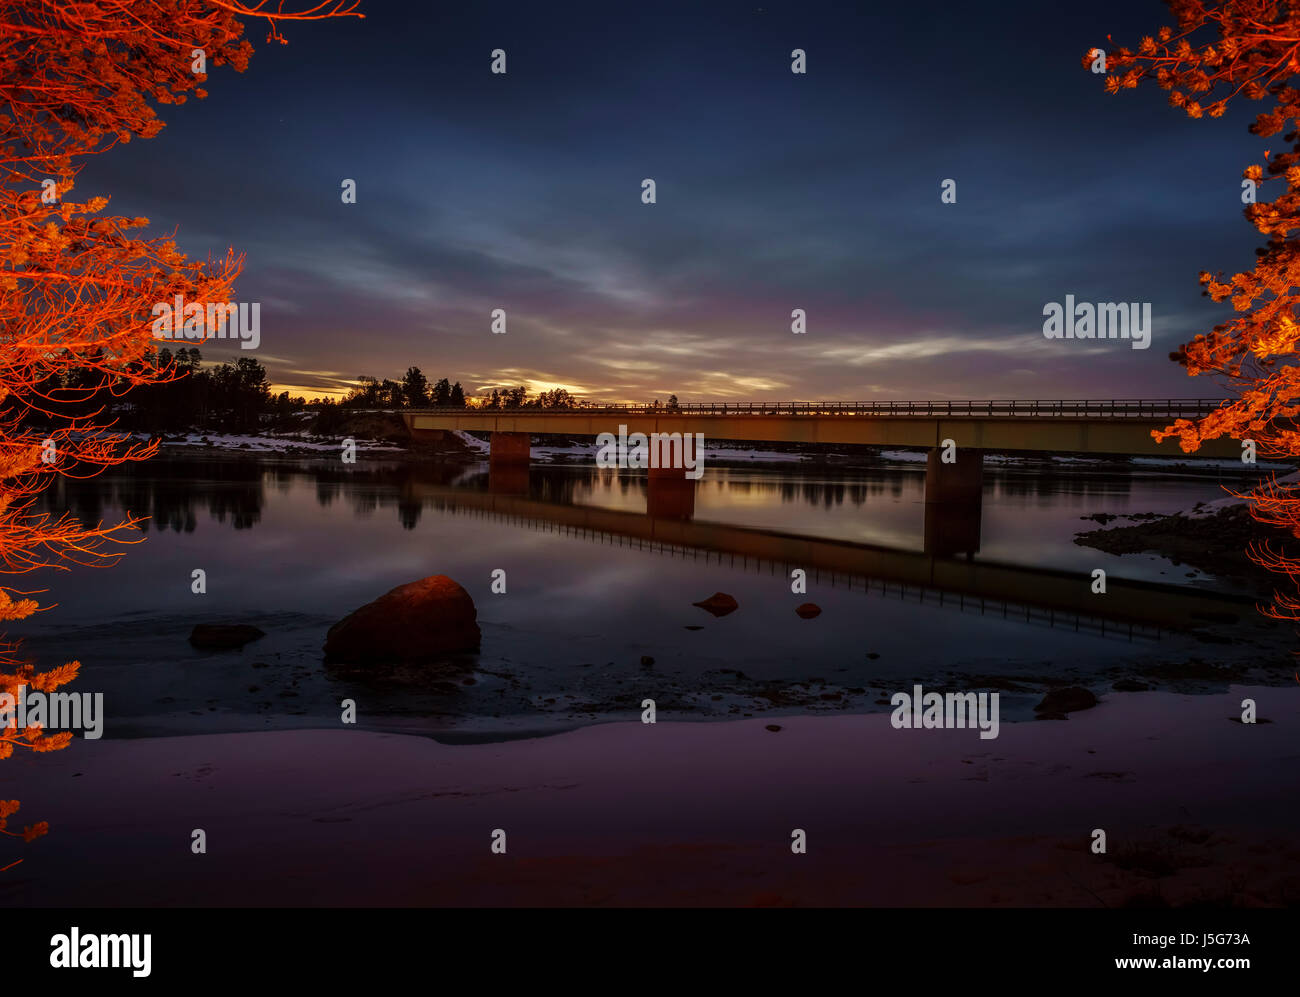 Paatsjoki River, by Hotel Nellim, Lapland, Finland Stock Photo